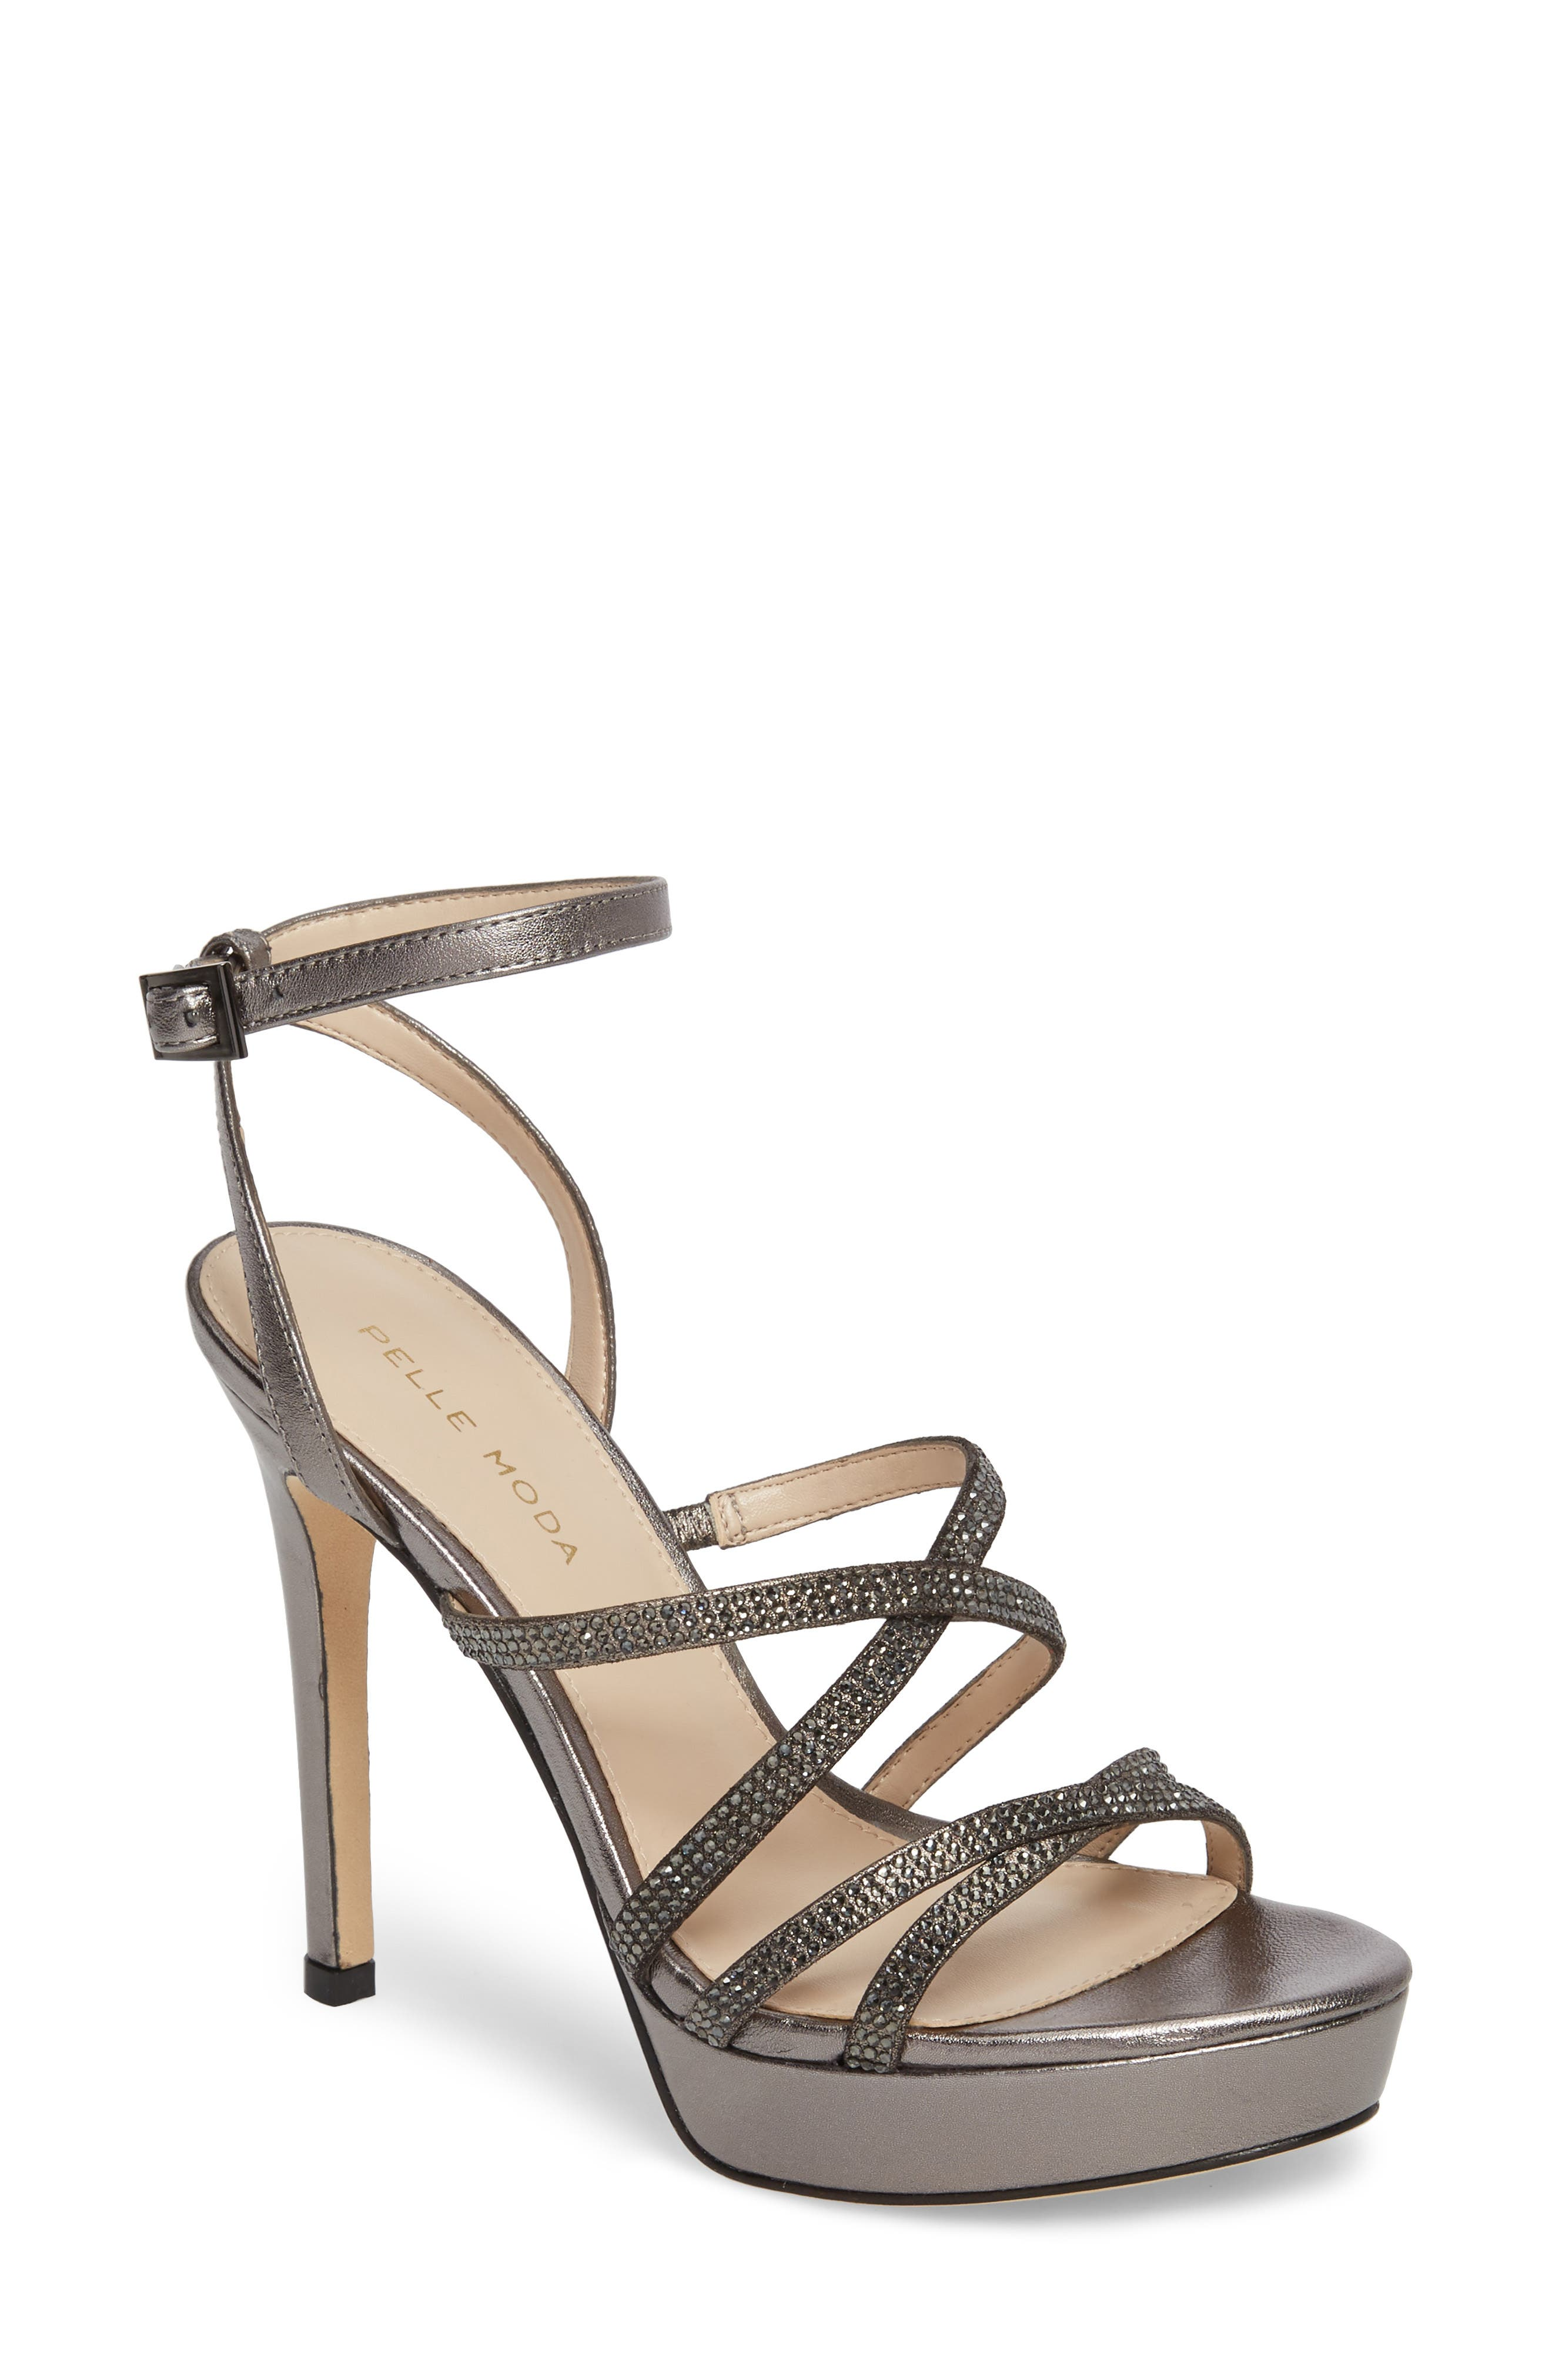 Oak Platform Sandal,                         Main,                         color, Pewter Metallic Suede